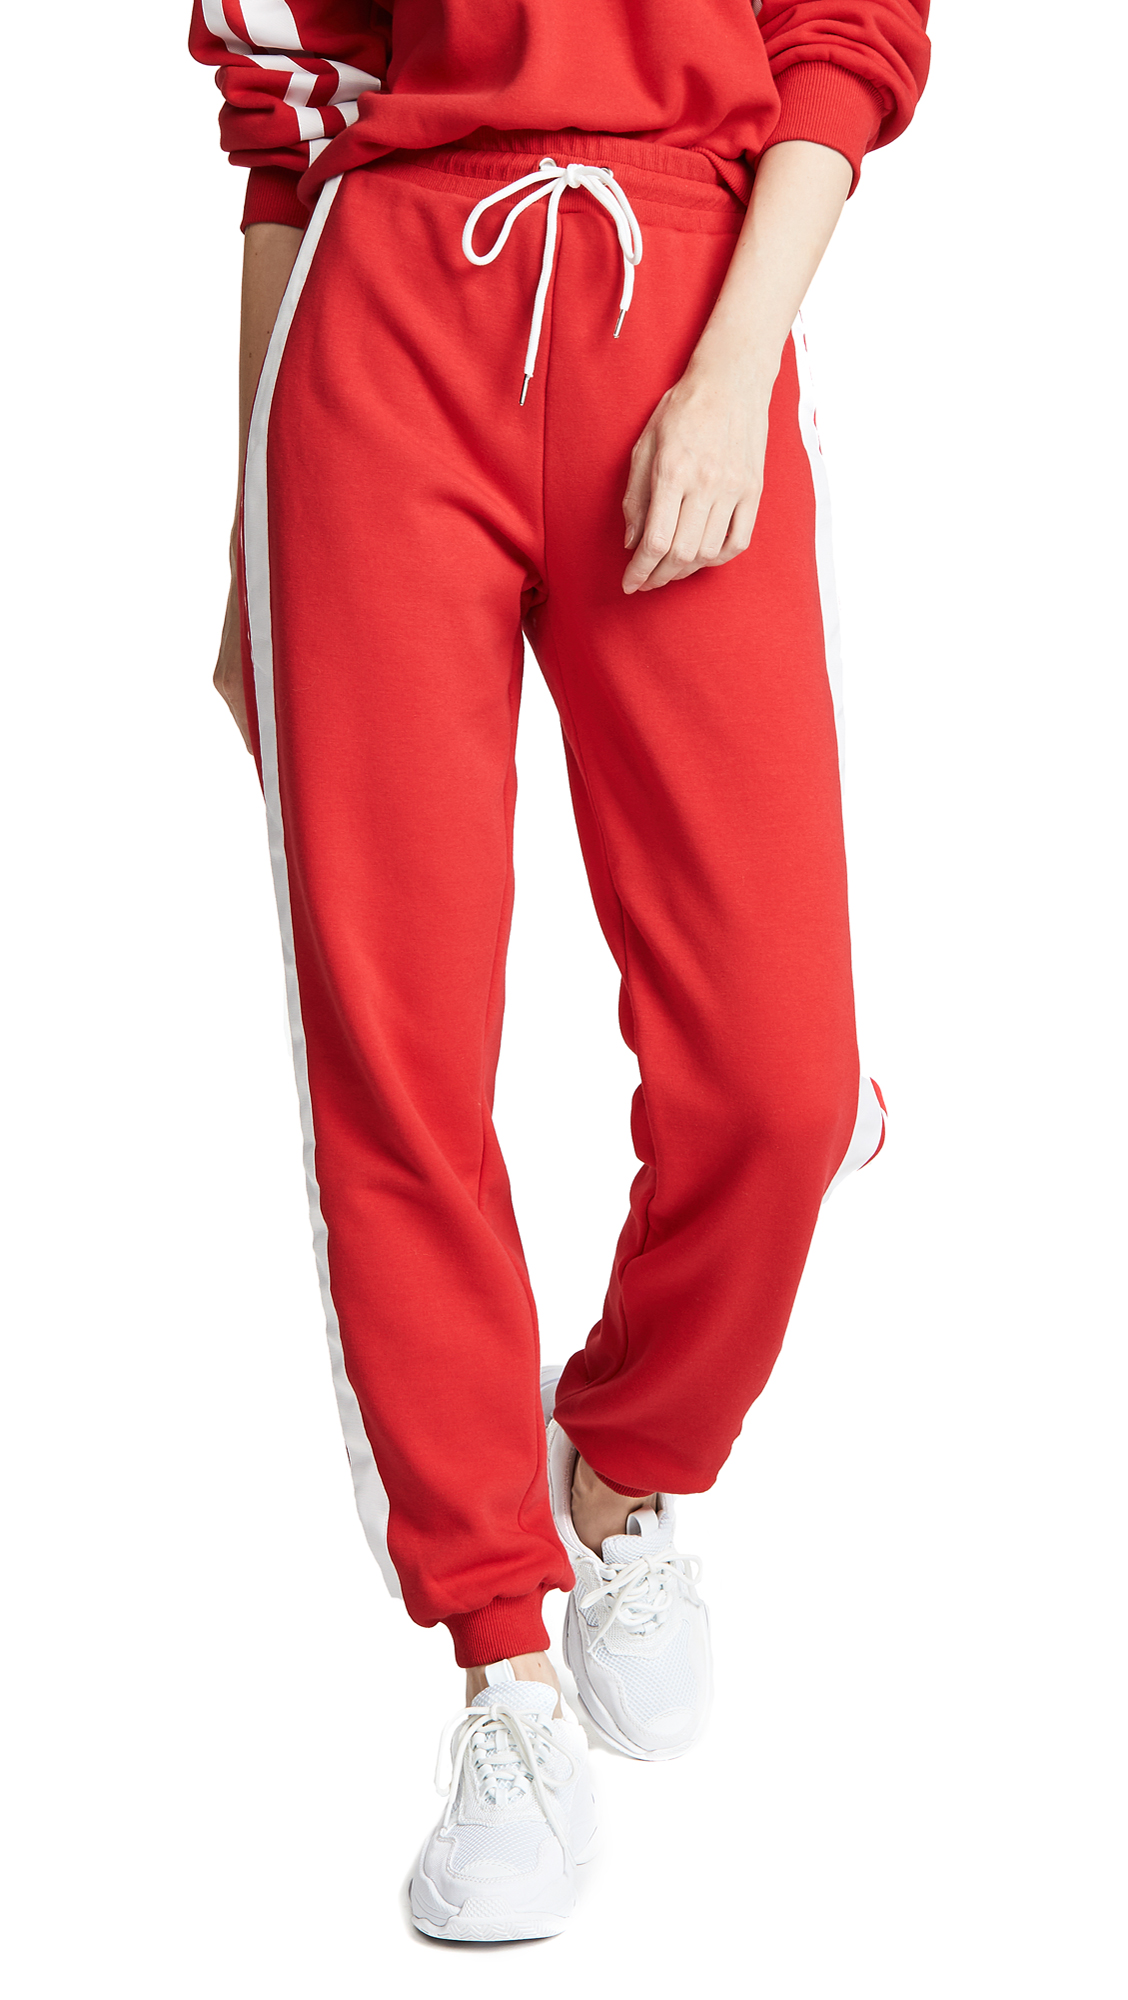 I.AM. GIA Striker Pants In Red